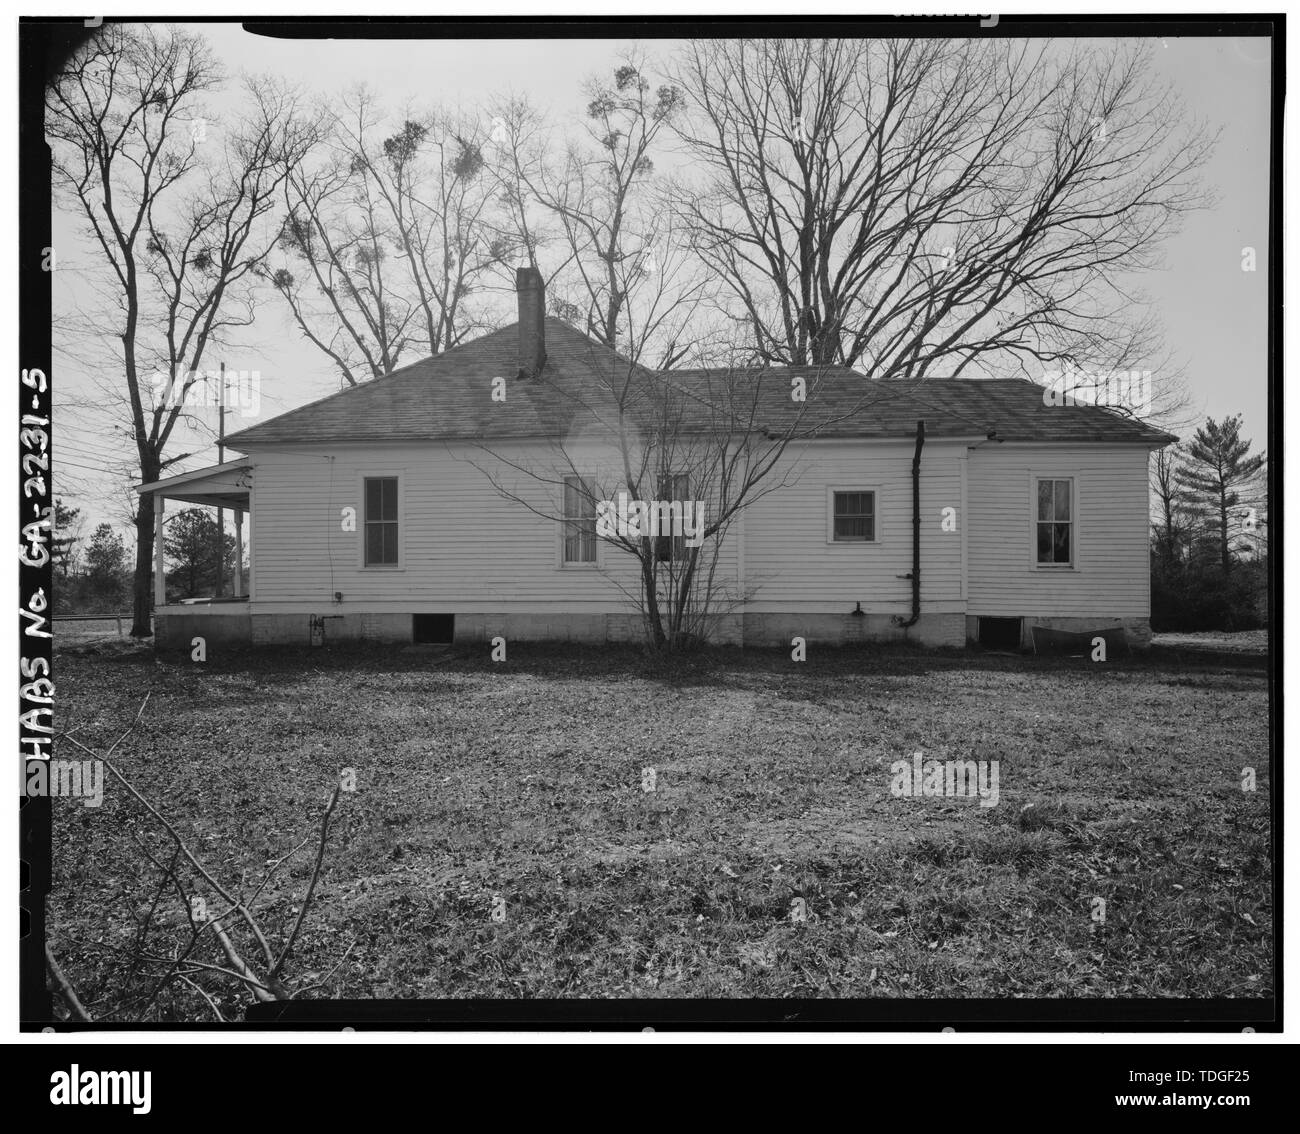 NORTHEAST SIDE. - Tatum House, 8101 Roosevelt Highway, Palmetto, Fulton County, GA - Stock Image